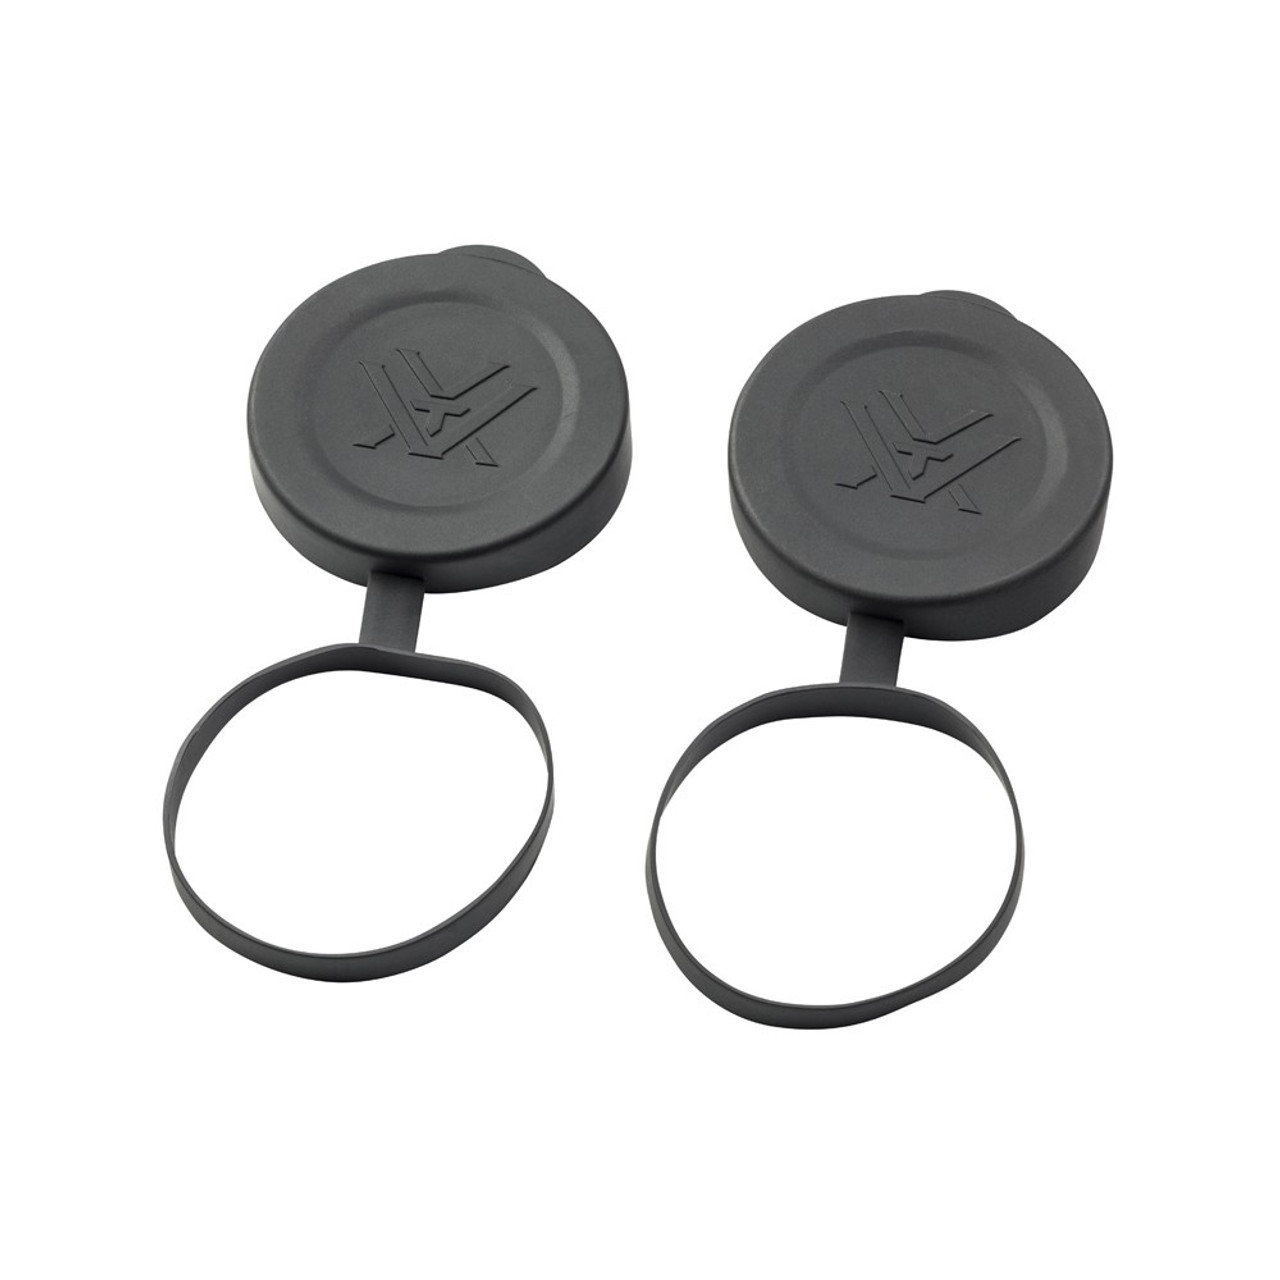 Tethered Objective Lens Covers 42mm Crossfire